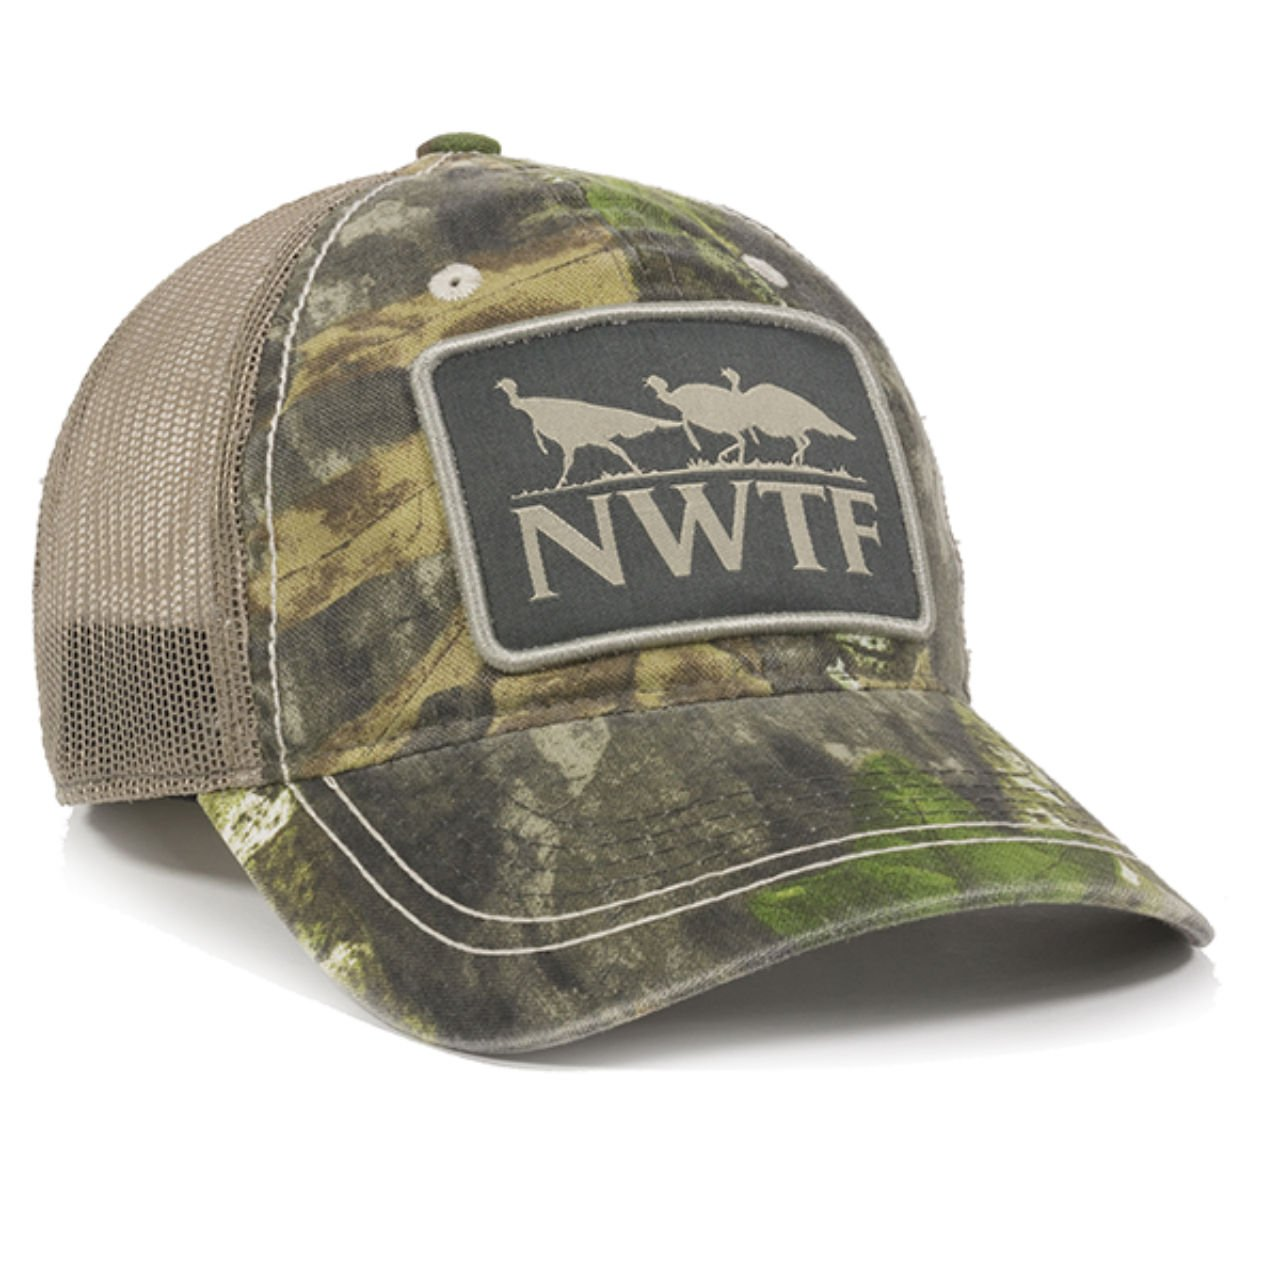 Amazon.com  Outdoor Cap NWTF Mossy Oak Obsession National Wild Turkey  Federation Camo Mesh Back Hunting Hat  Clothing 209d1244cc82